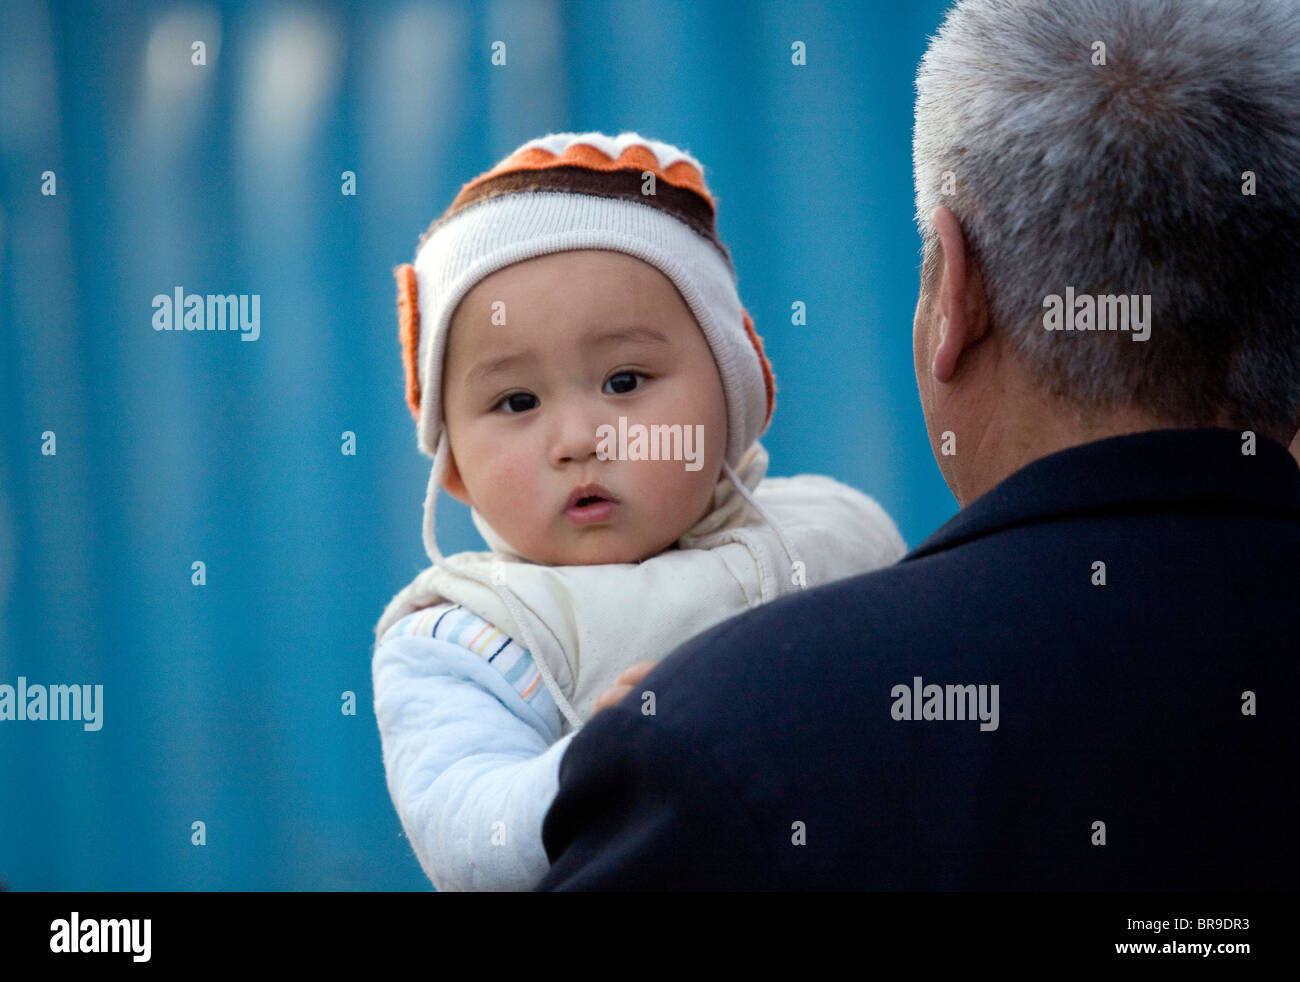 An infant looks out from over his grandfather's shoulder as they walk together down a Beijing street China. - Stock Image